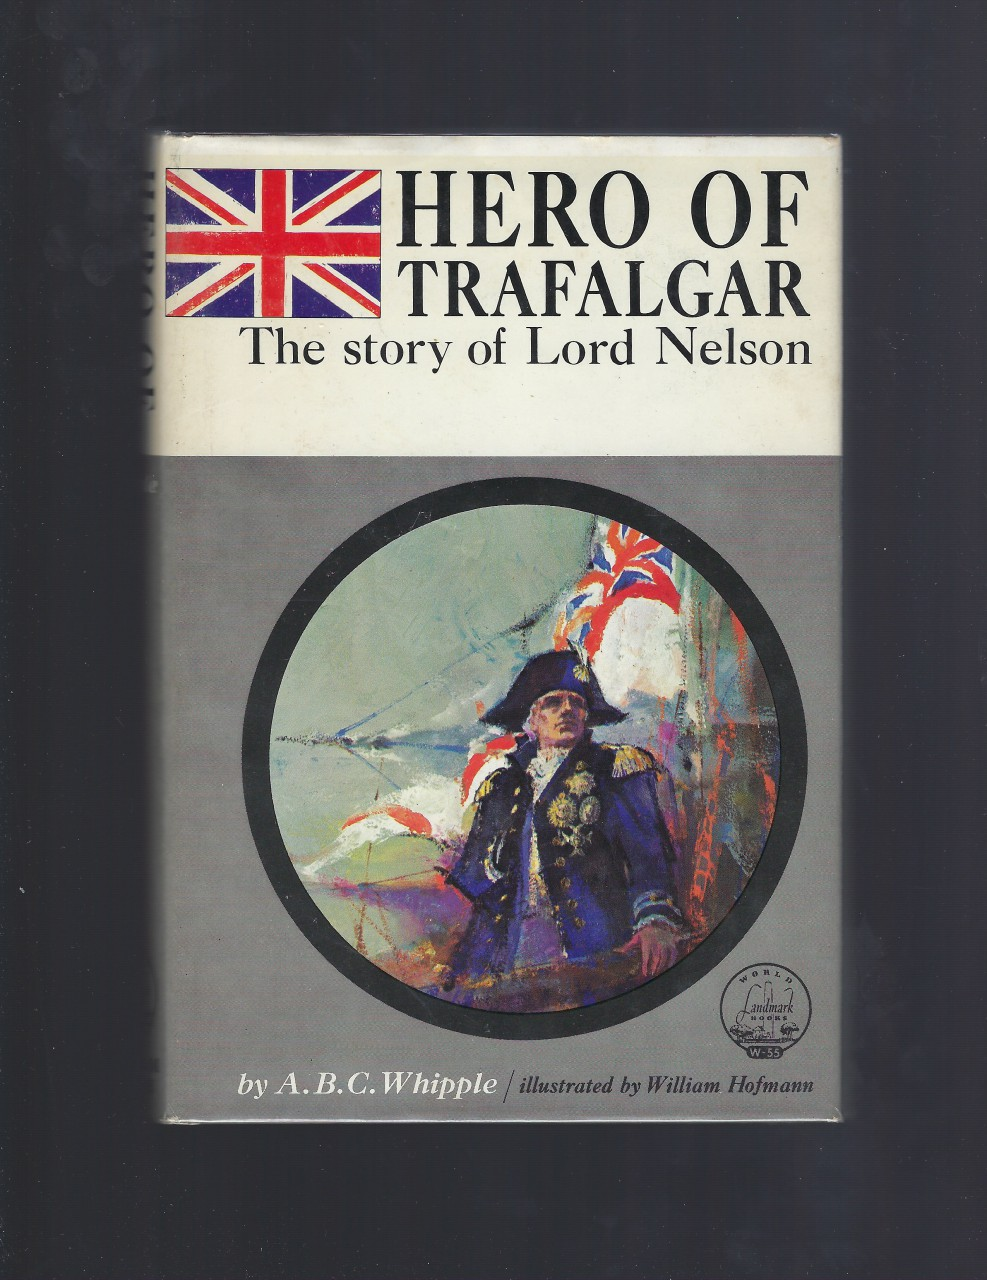 Hero of Trafalgar The Story of Lord Nelson Landmark HB/DJ Very Nice, A. B. C. Whipple; Illustrator-William Hofmann